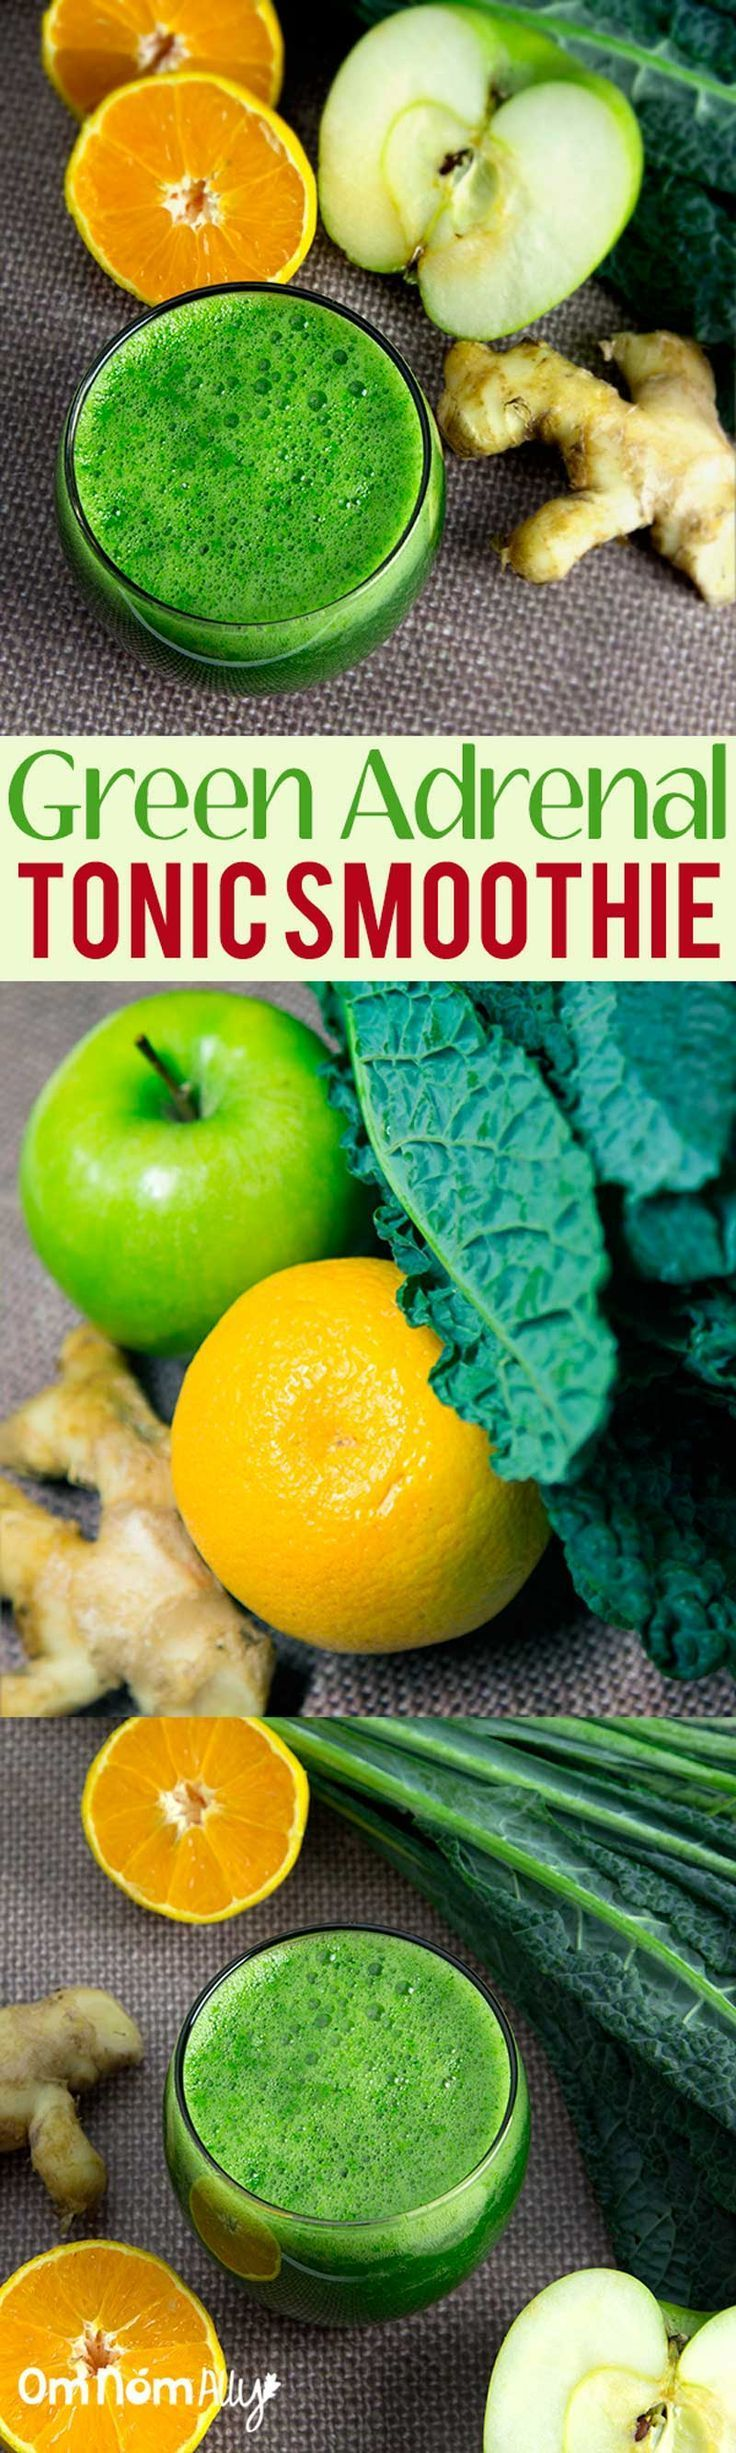 Eating for Hormonal Balance + Green Adrenal Tonic Smoothie